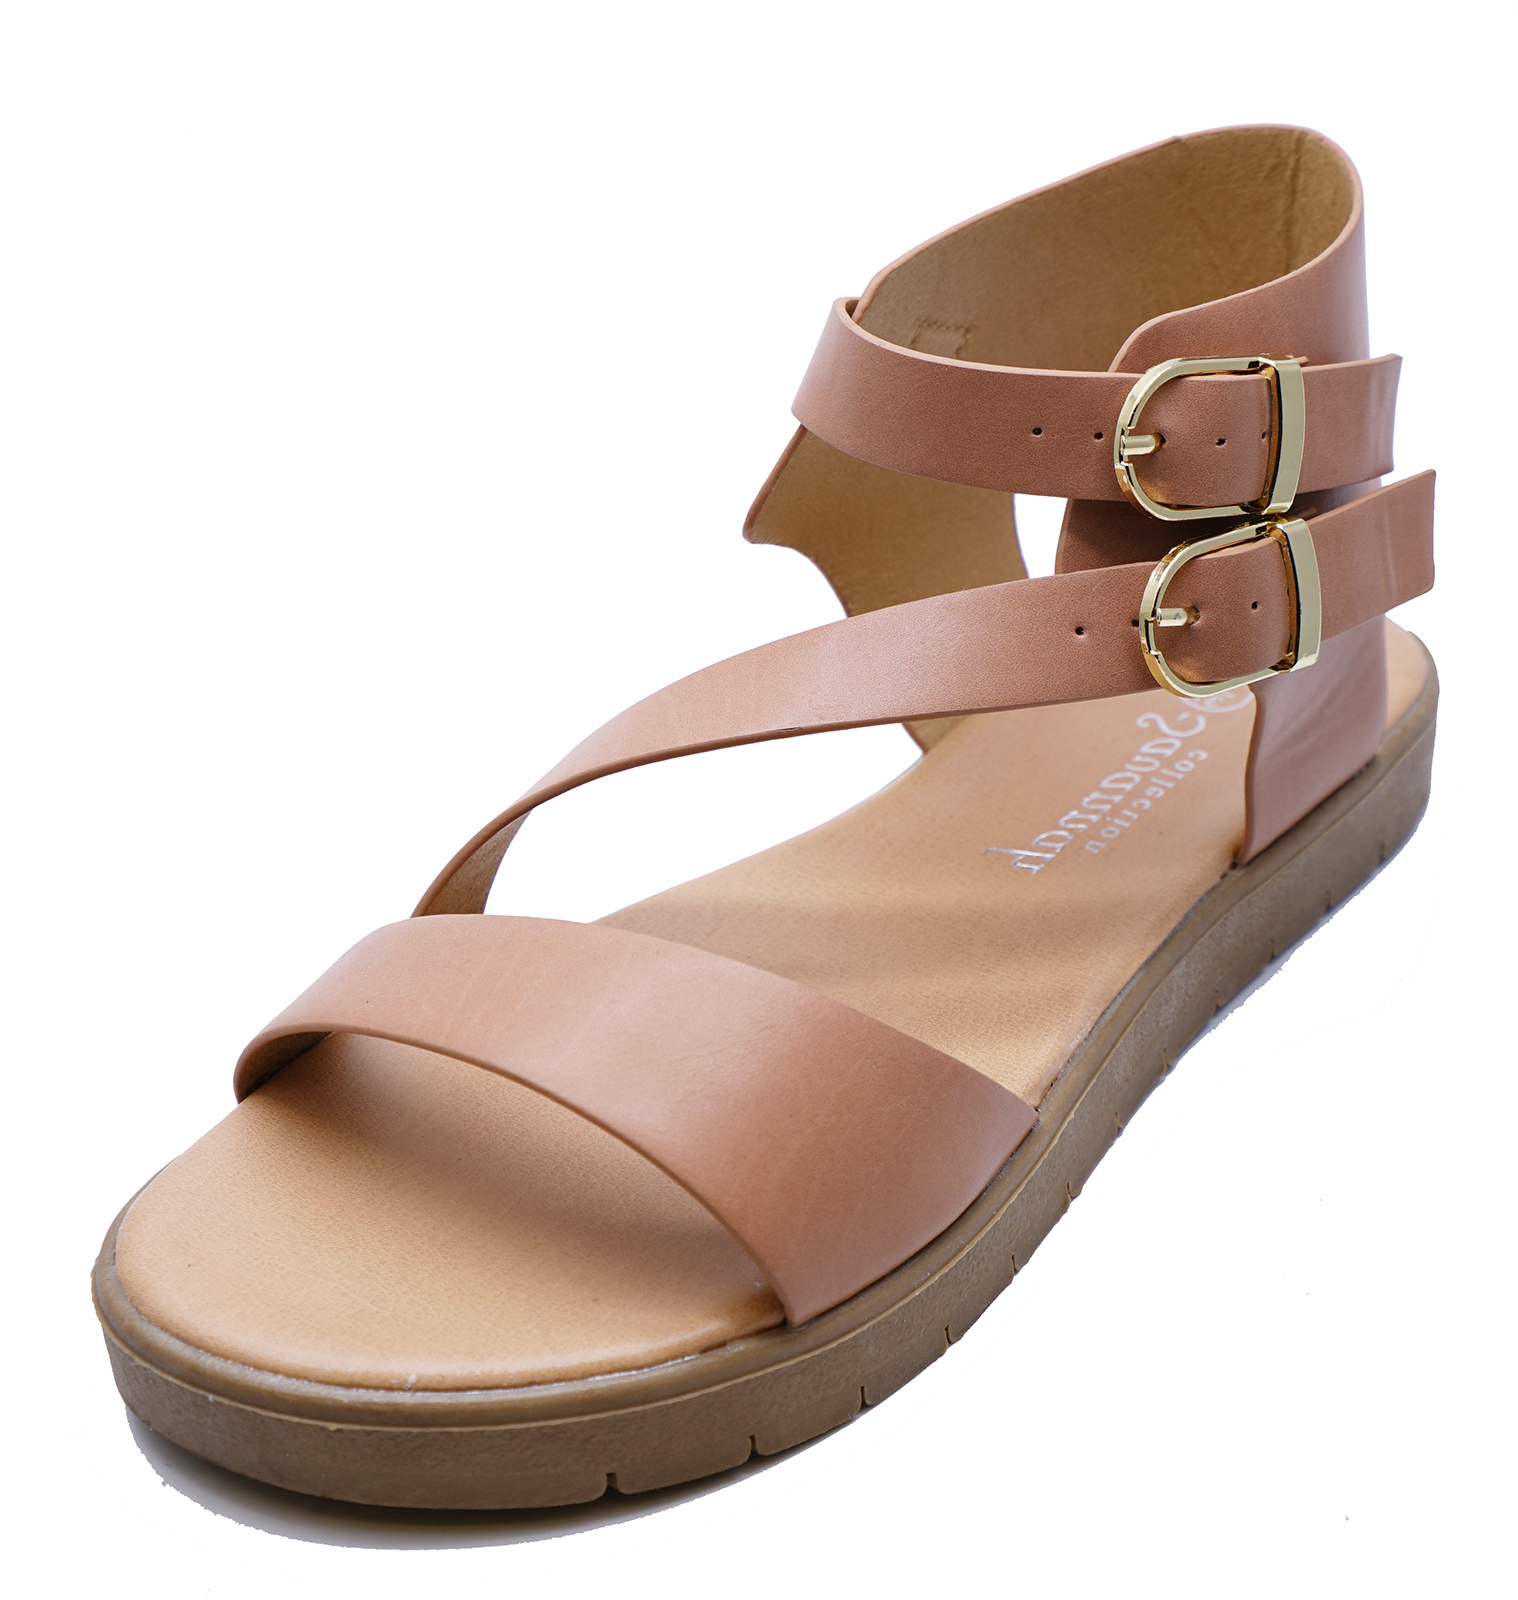 38615be55a5 Sentinel WOMENS NUDE FLAT GLADIATOR SUMMER SANDALS STRAPPY WALKING ANKLE SHOES  SIZES 3-8